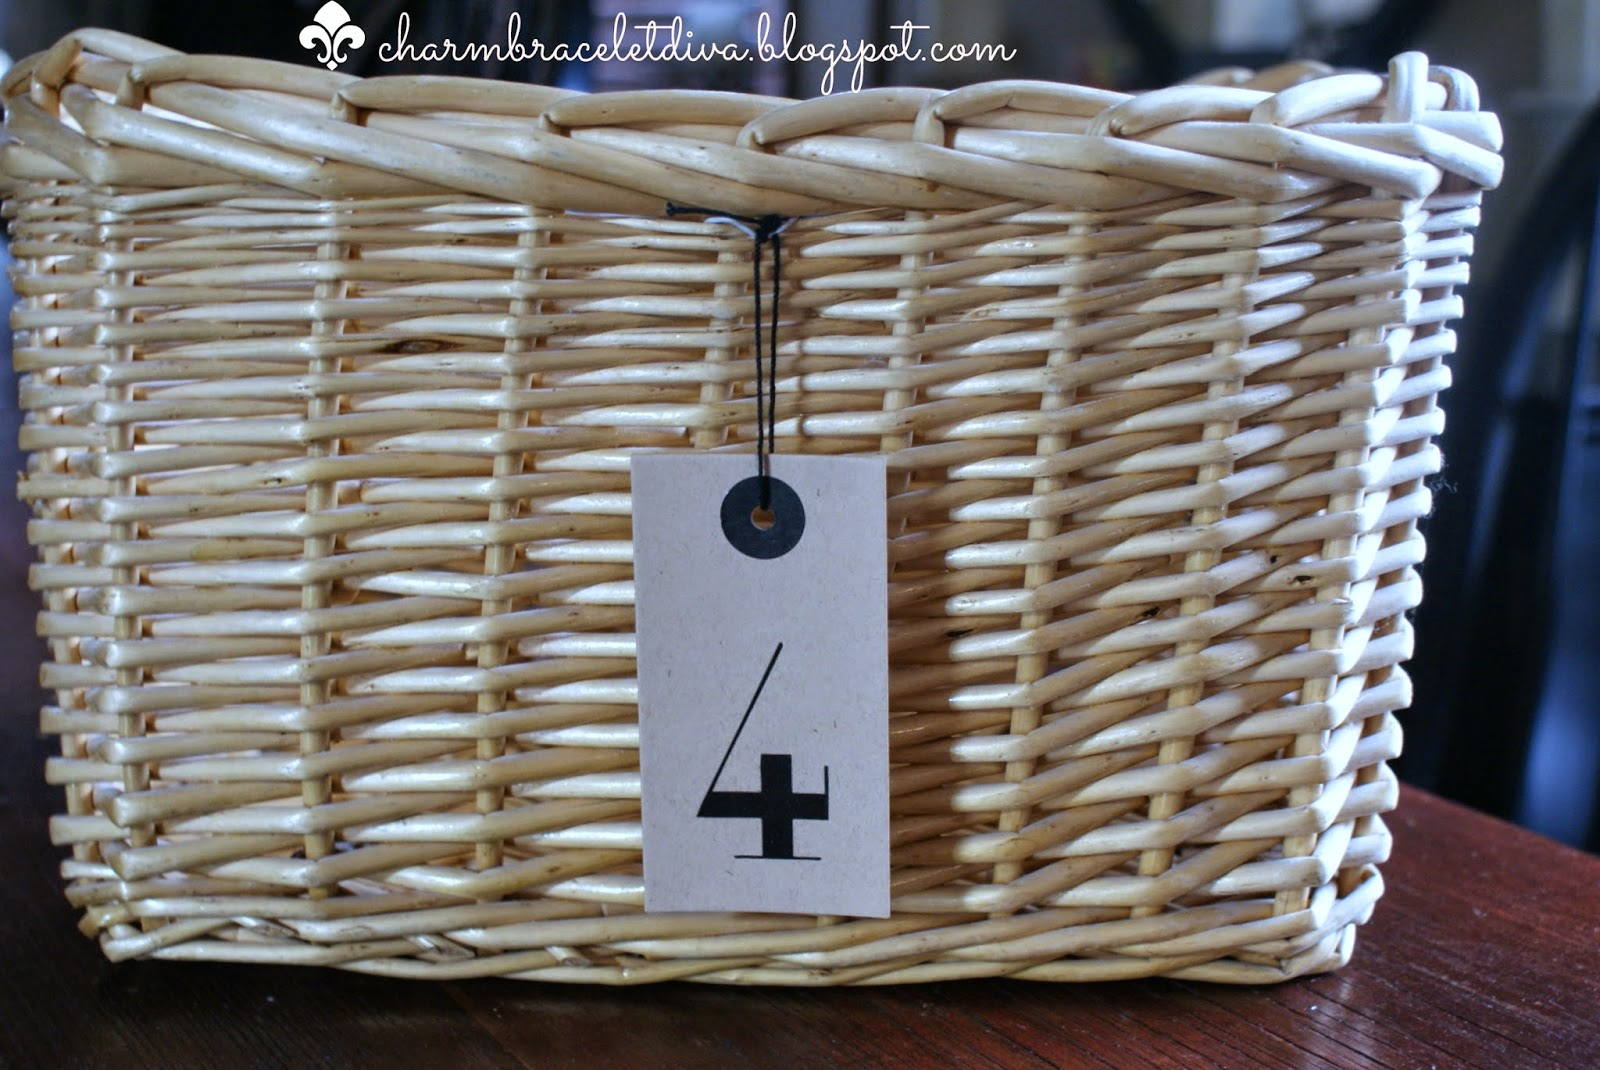 storage basket with preprinted number 4 tag